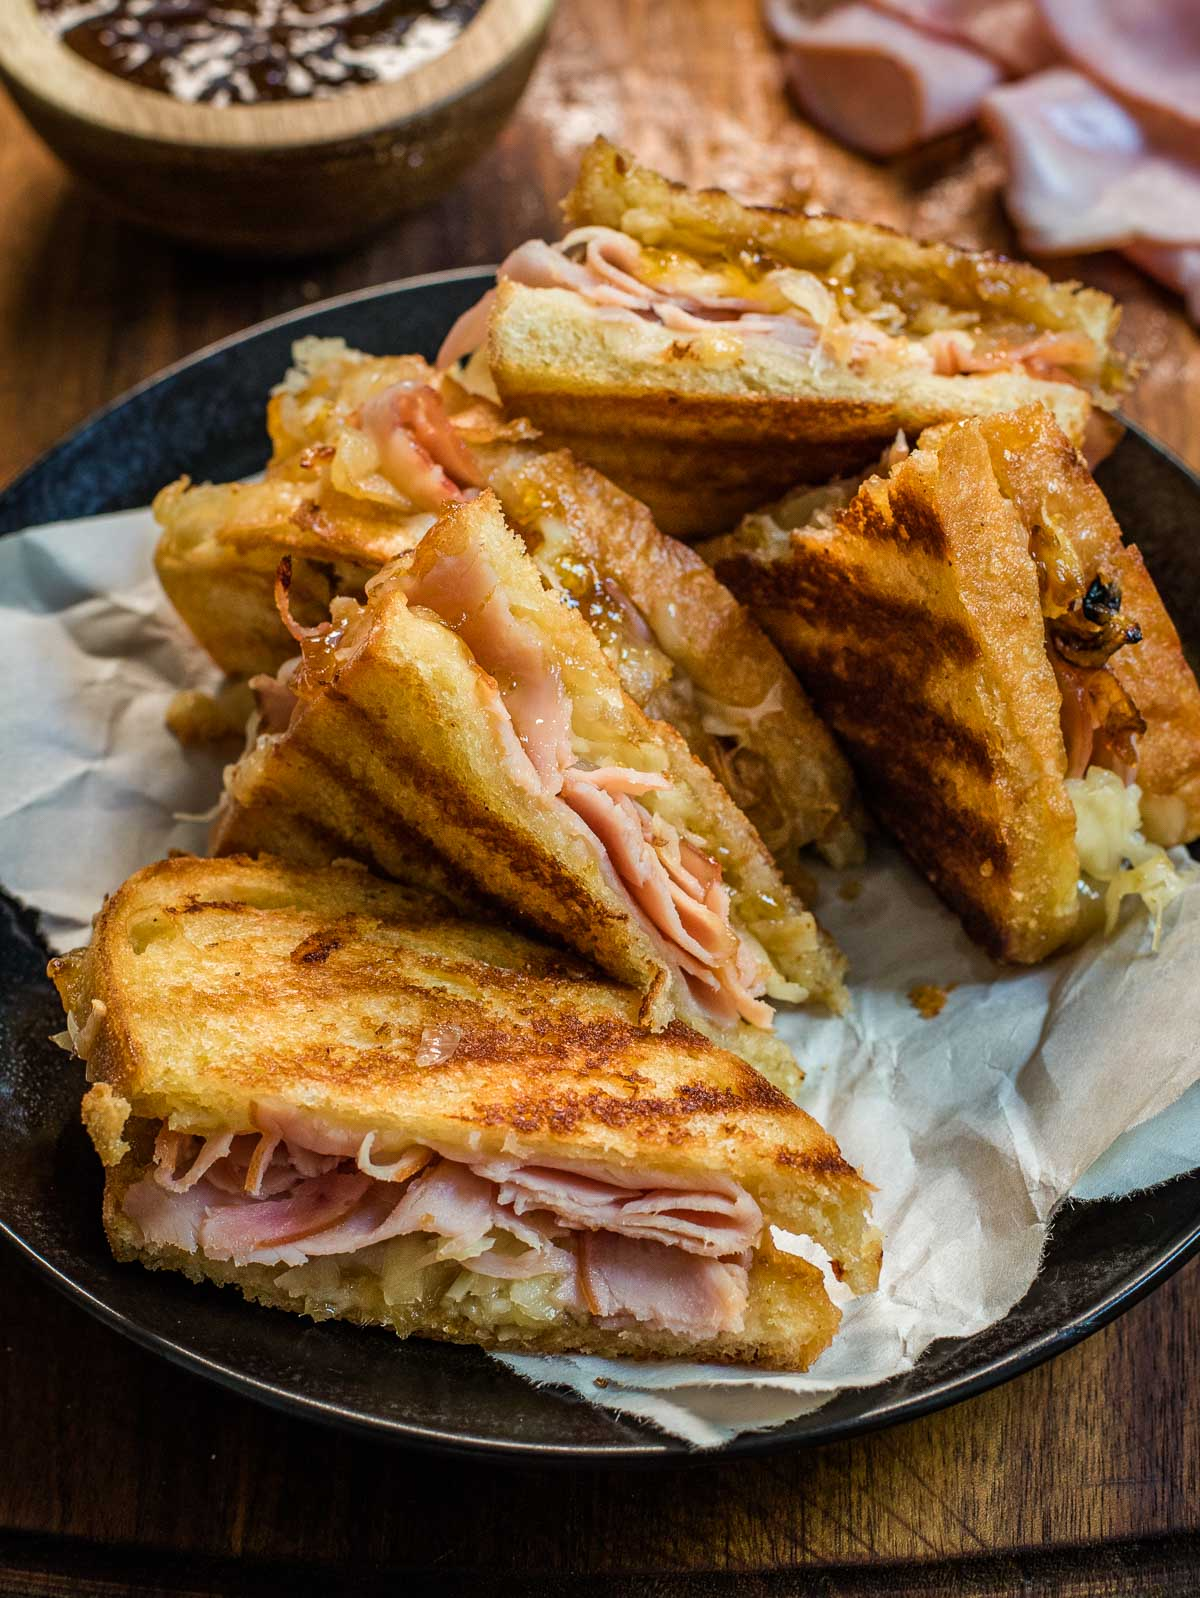 Criss crossed grilled cheese halves ona black plate.